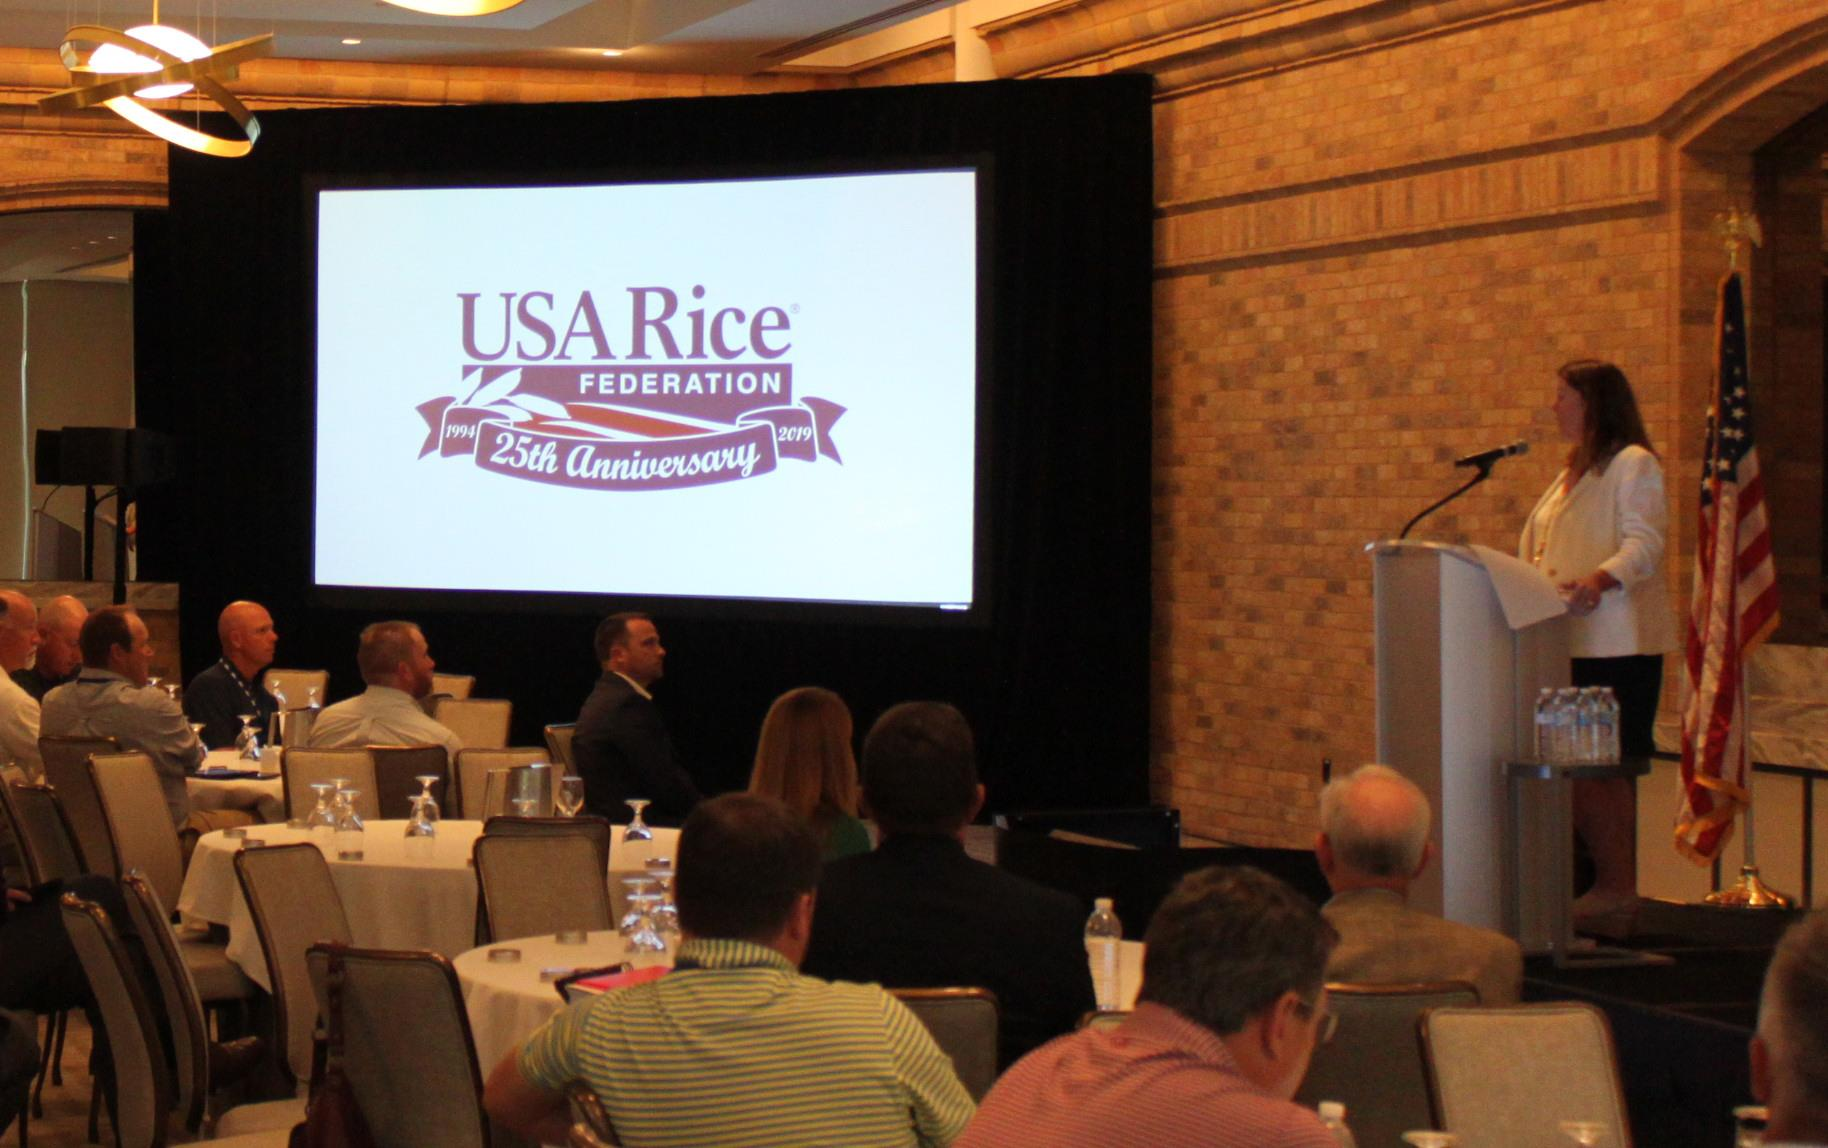 """Crowded meeting room, woman standing at podium next to projected slides that reads: """"USA Rice Federation 25th Anniversary"""""""